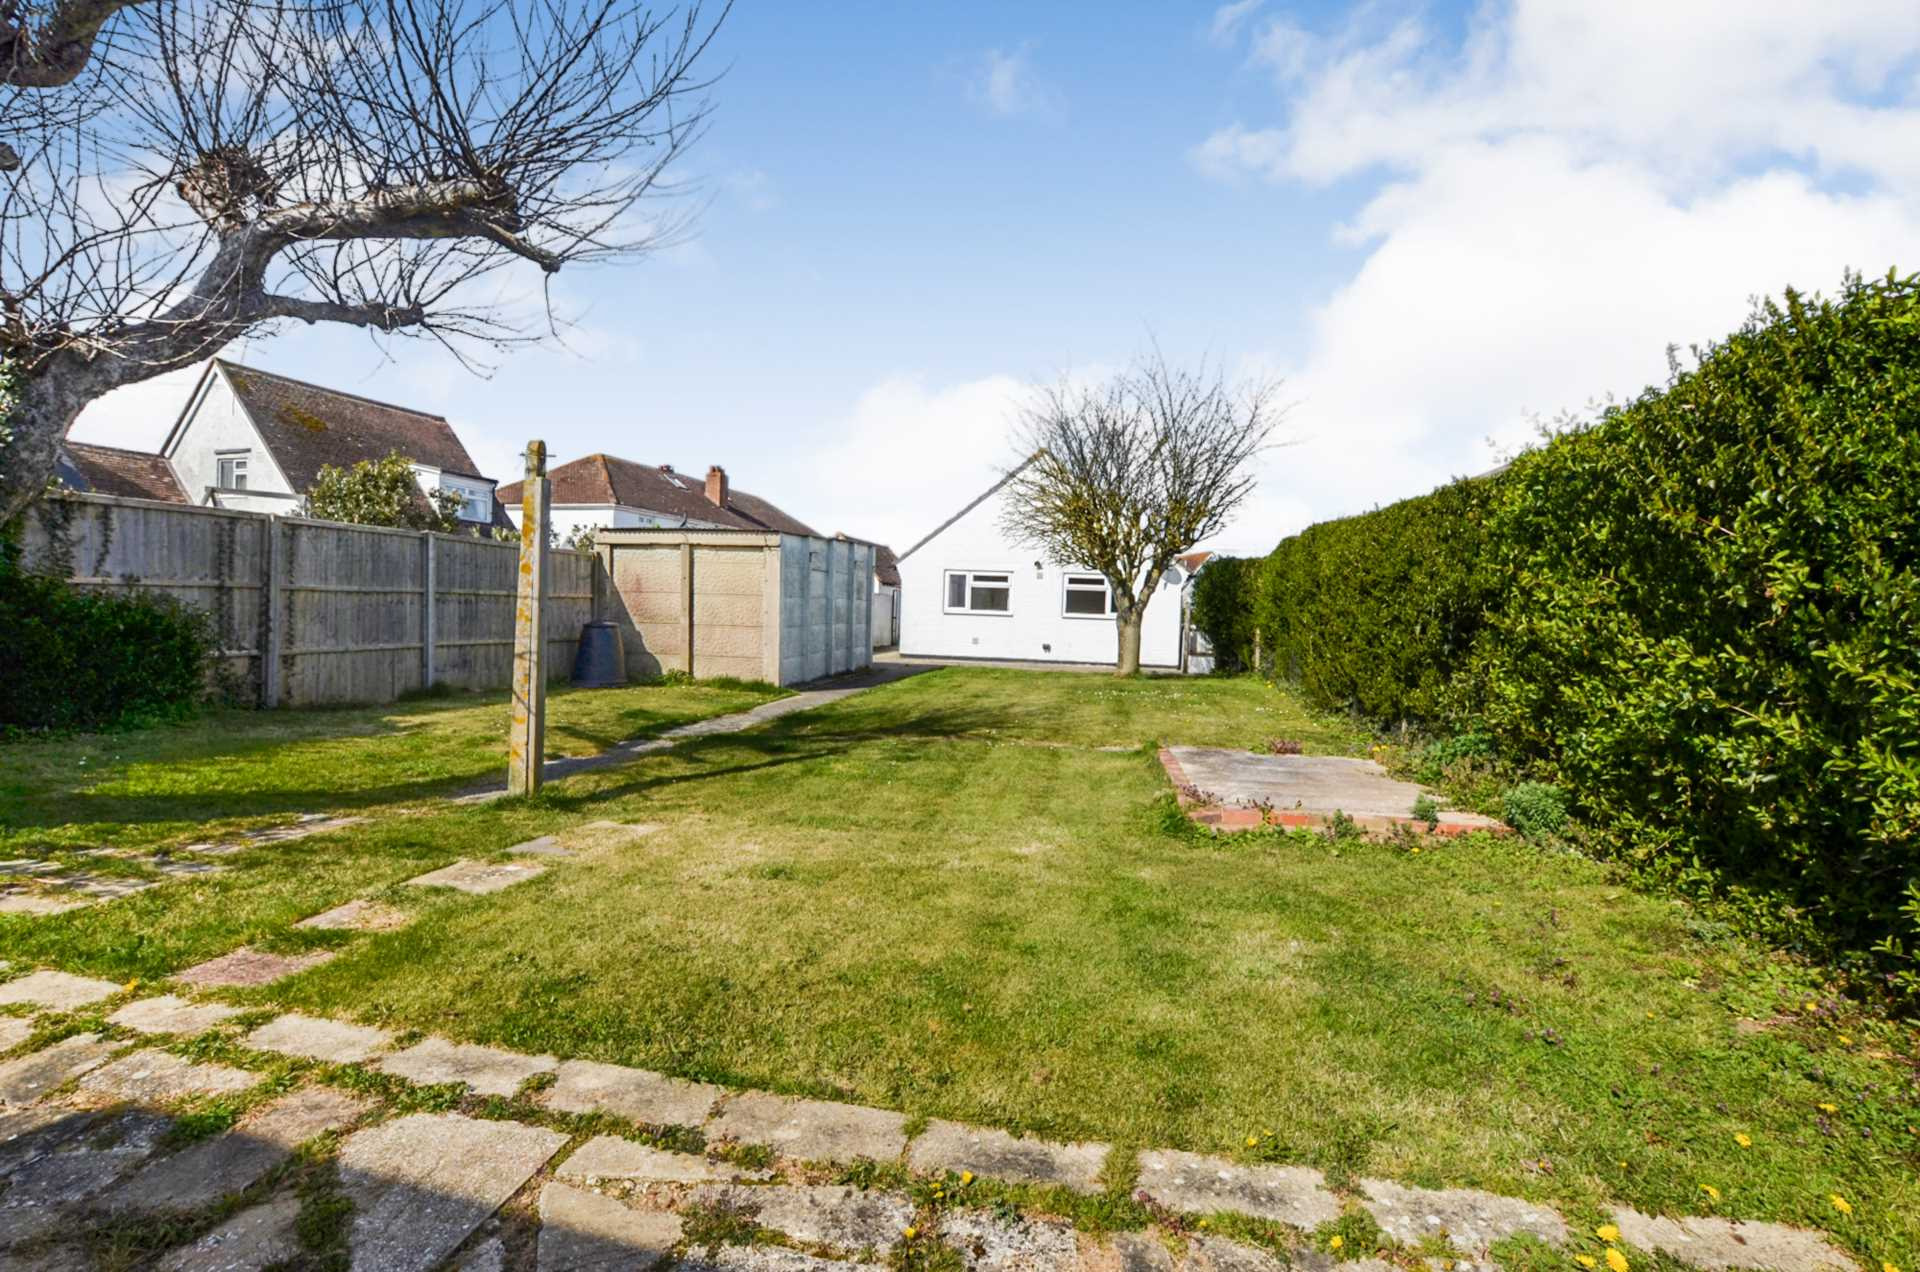 Little Rumford, Russell Road, West Wittering, PO20 8EF, Image 11